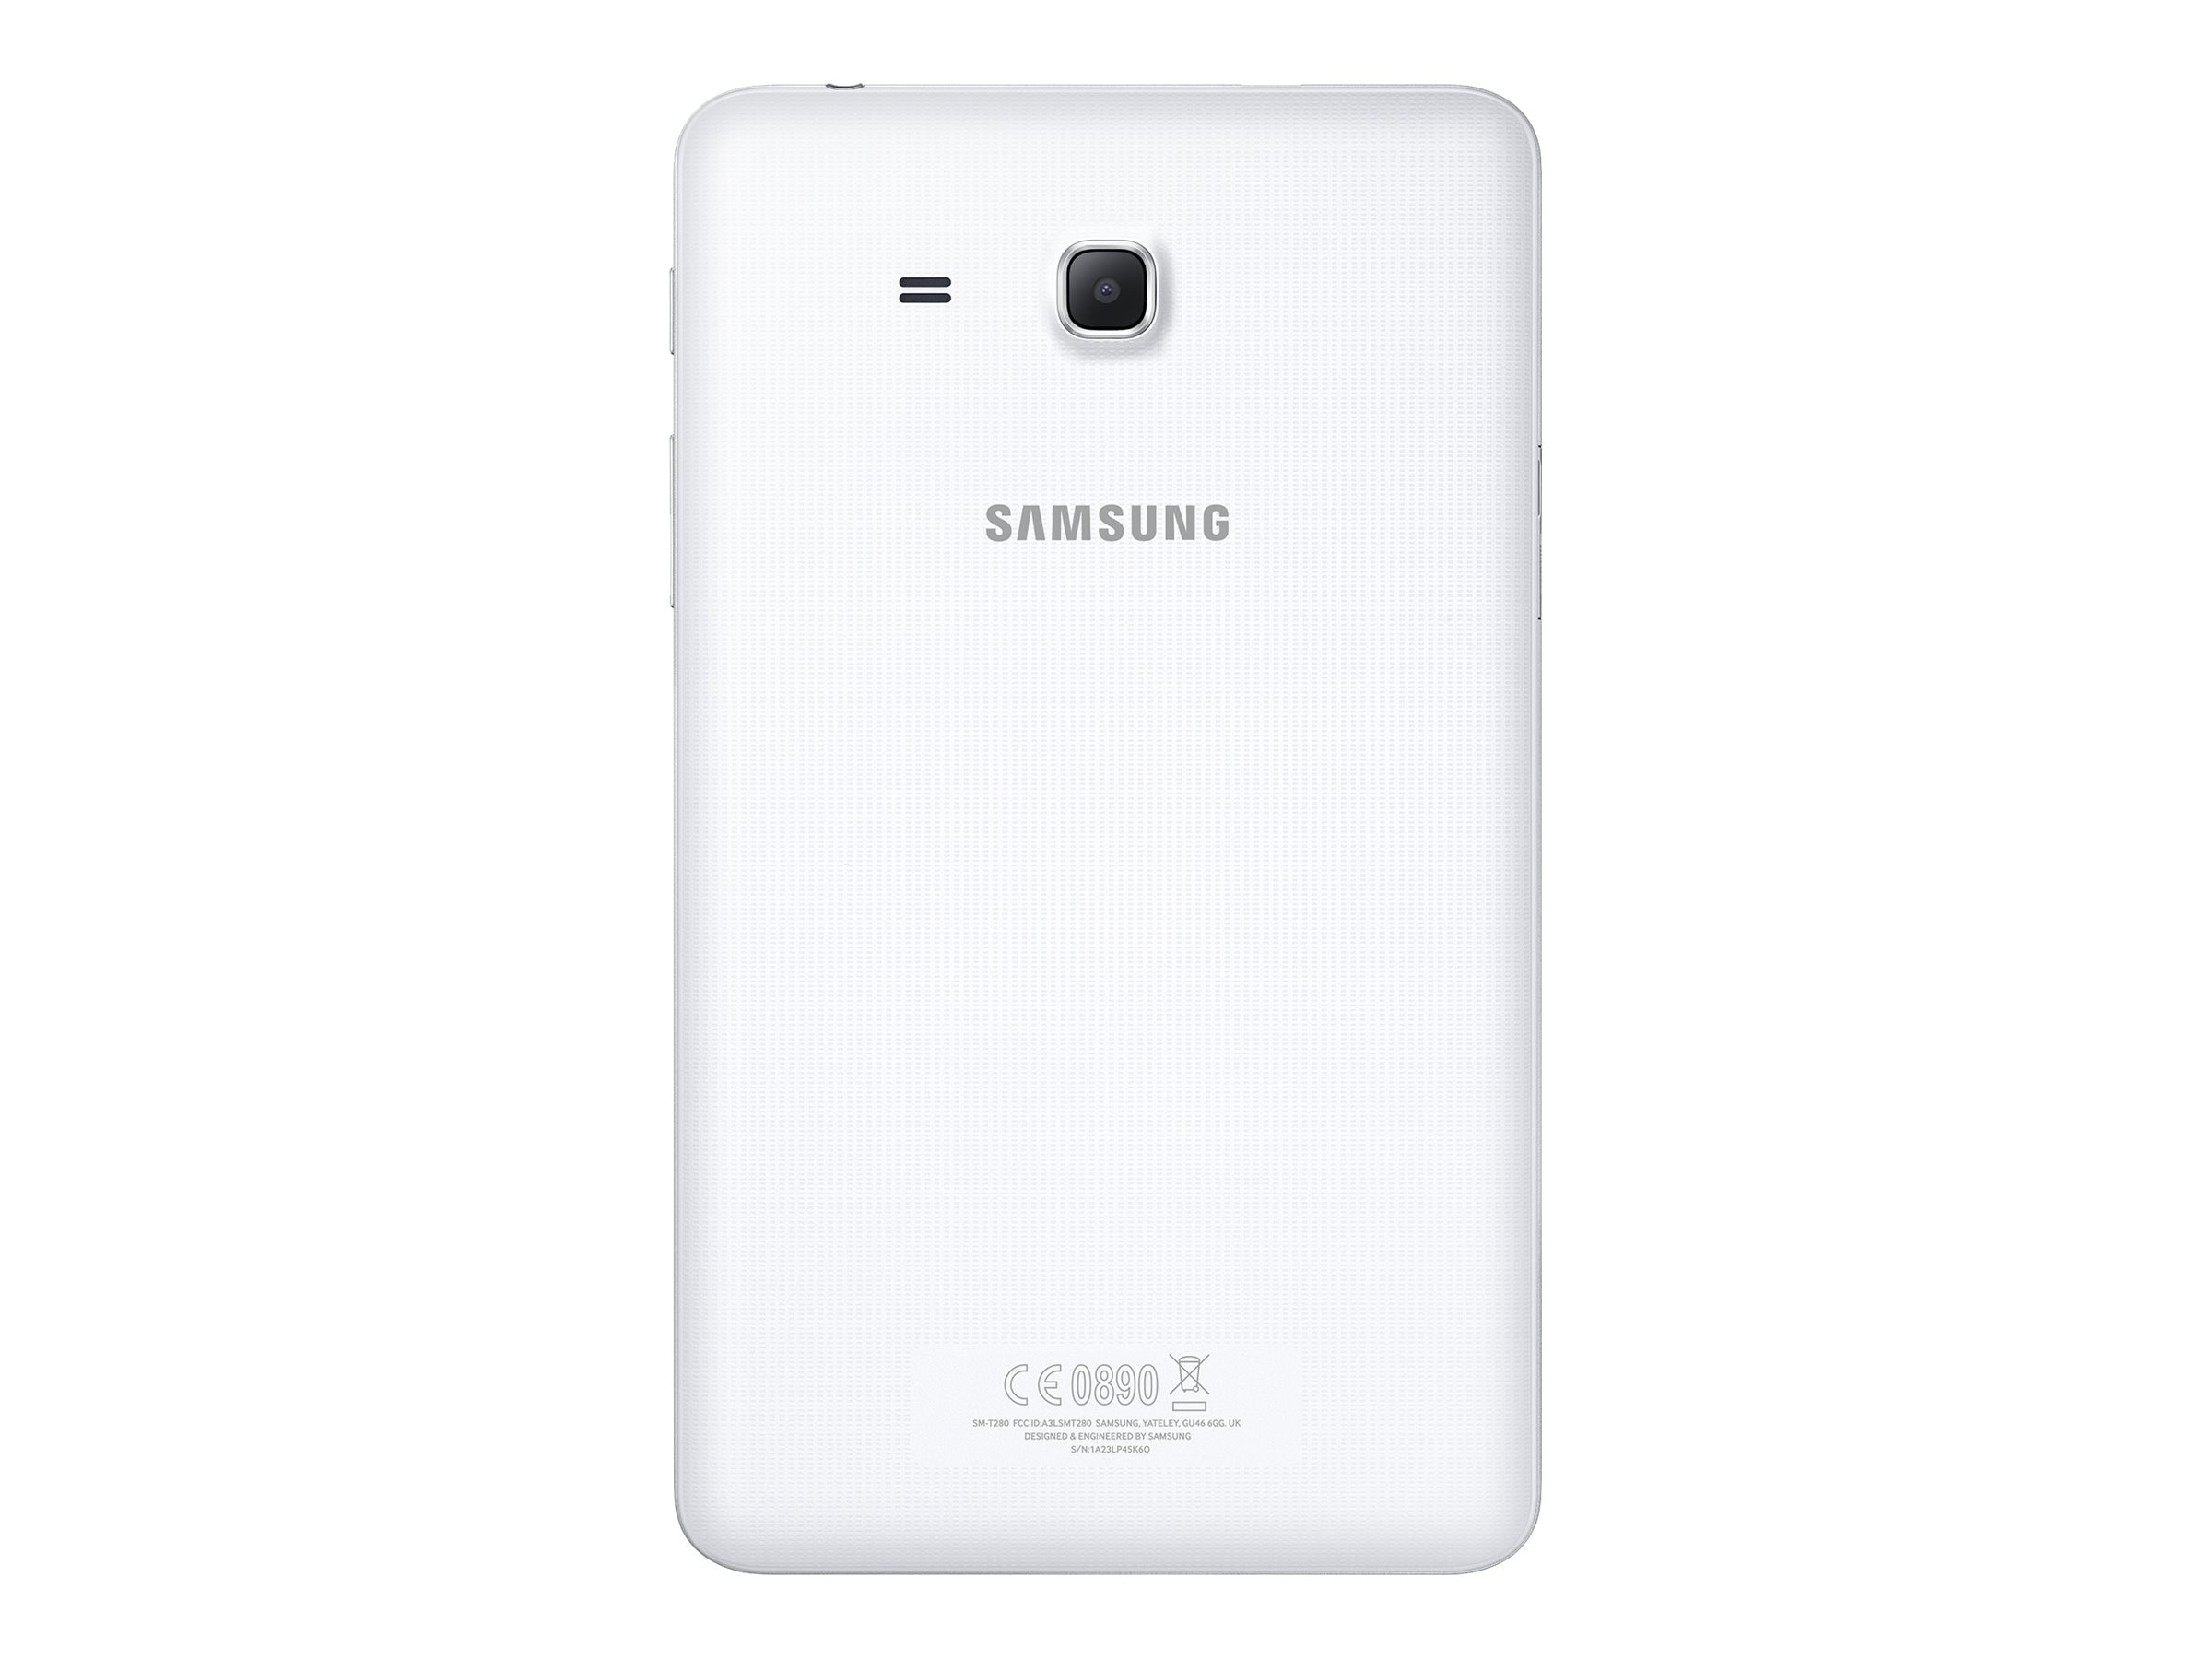 Samsung Galaxy Tab A with S-Pen, White, SM-P580NZWAXAR